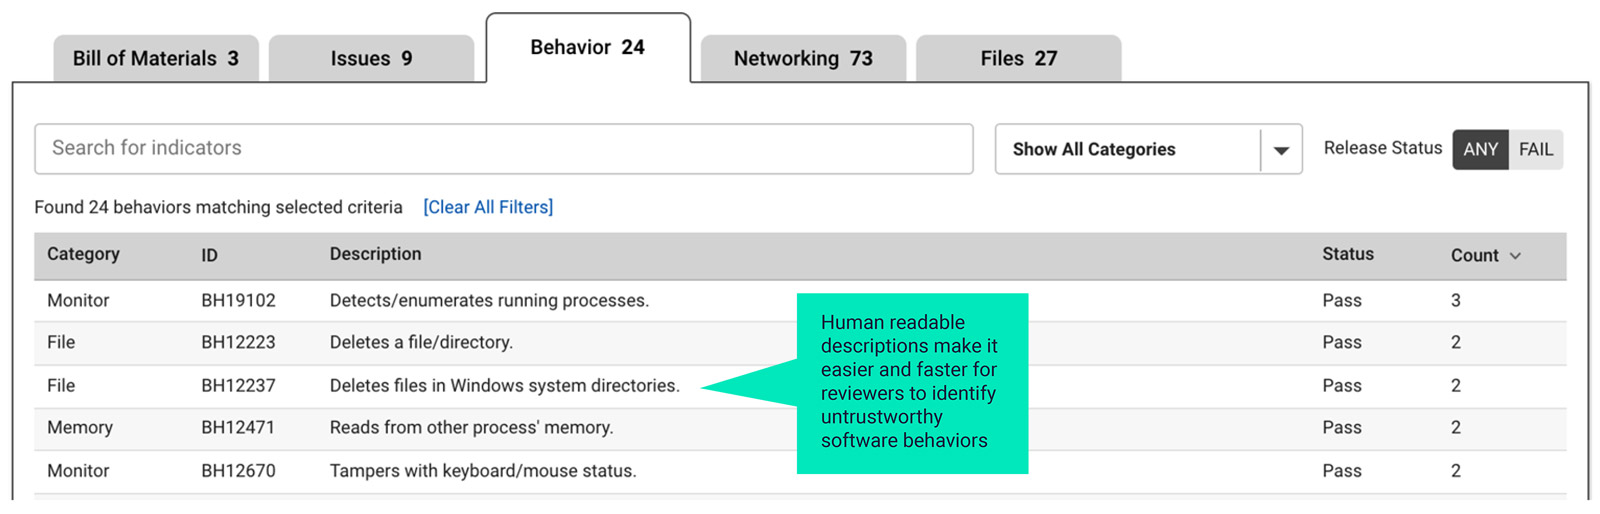 Behavior audits of release packages are ideal for investigating software tampering